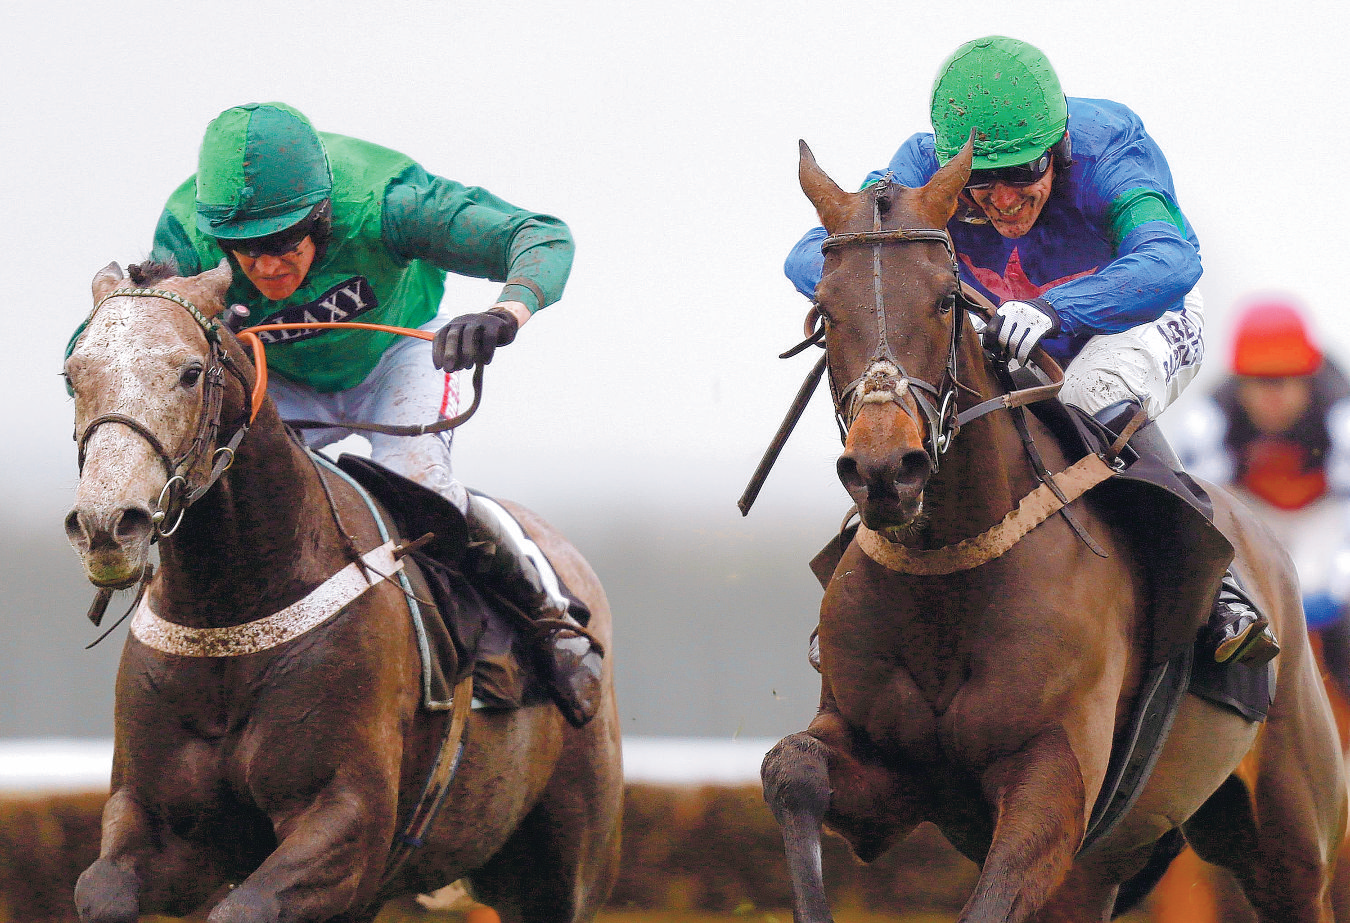 BATTLE: Dawalan ridden by Barry Geraghty (left) with Rayak ridden by Tony McCoy on their way to victory in the Blackmore Building Juvenile Hurdle during the Christmas Raceday at Newbury Racecourse